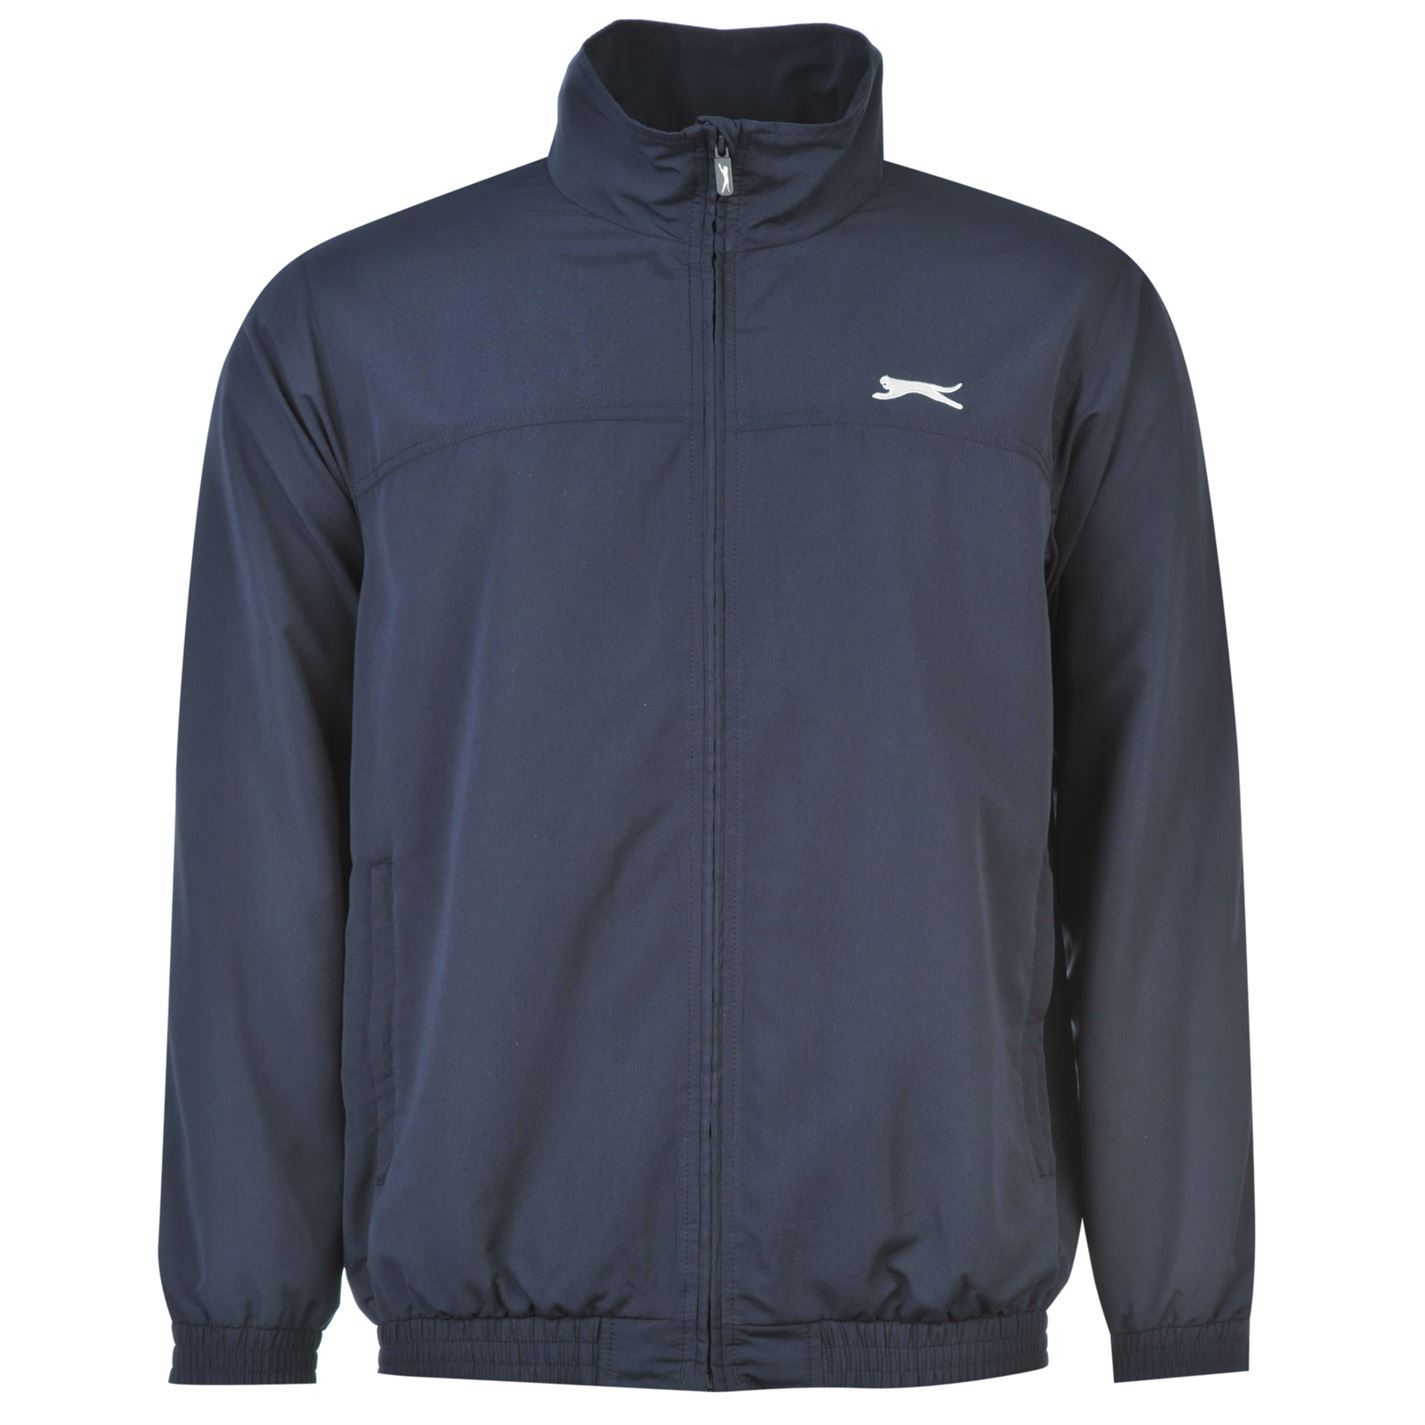 a83197a7d9e ... Slazenger Woven Tracksuit Set Bottoms & Track Jacket Mens Navy ...